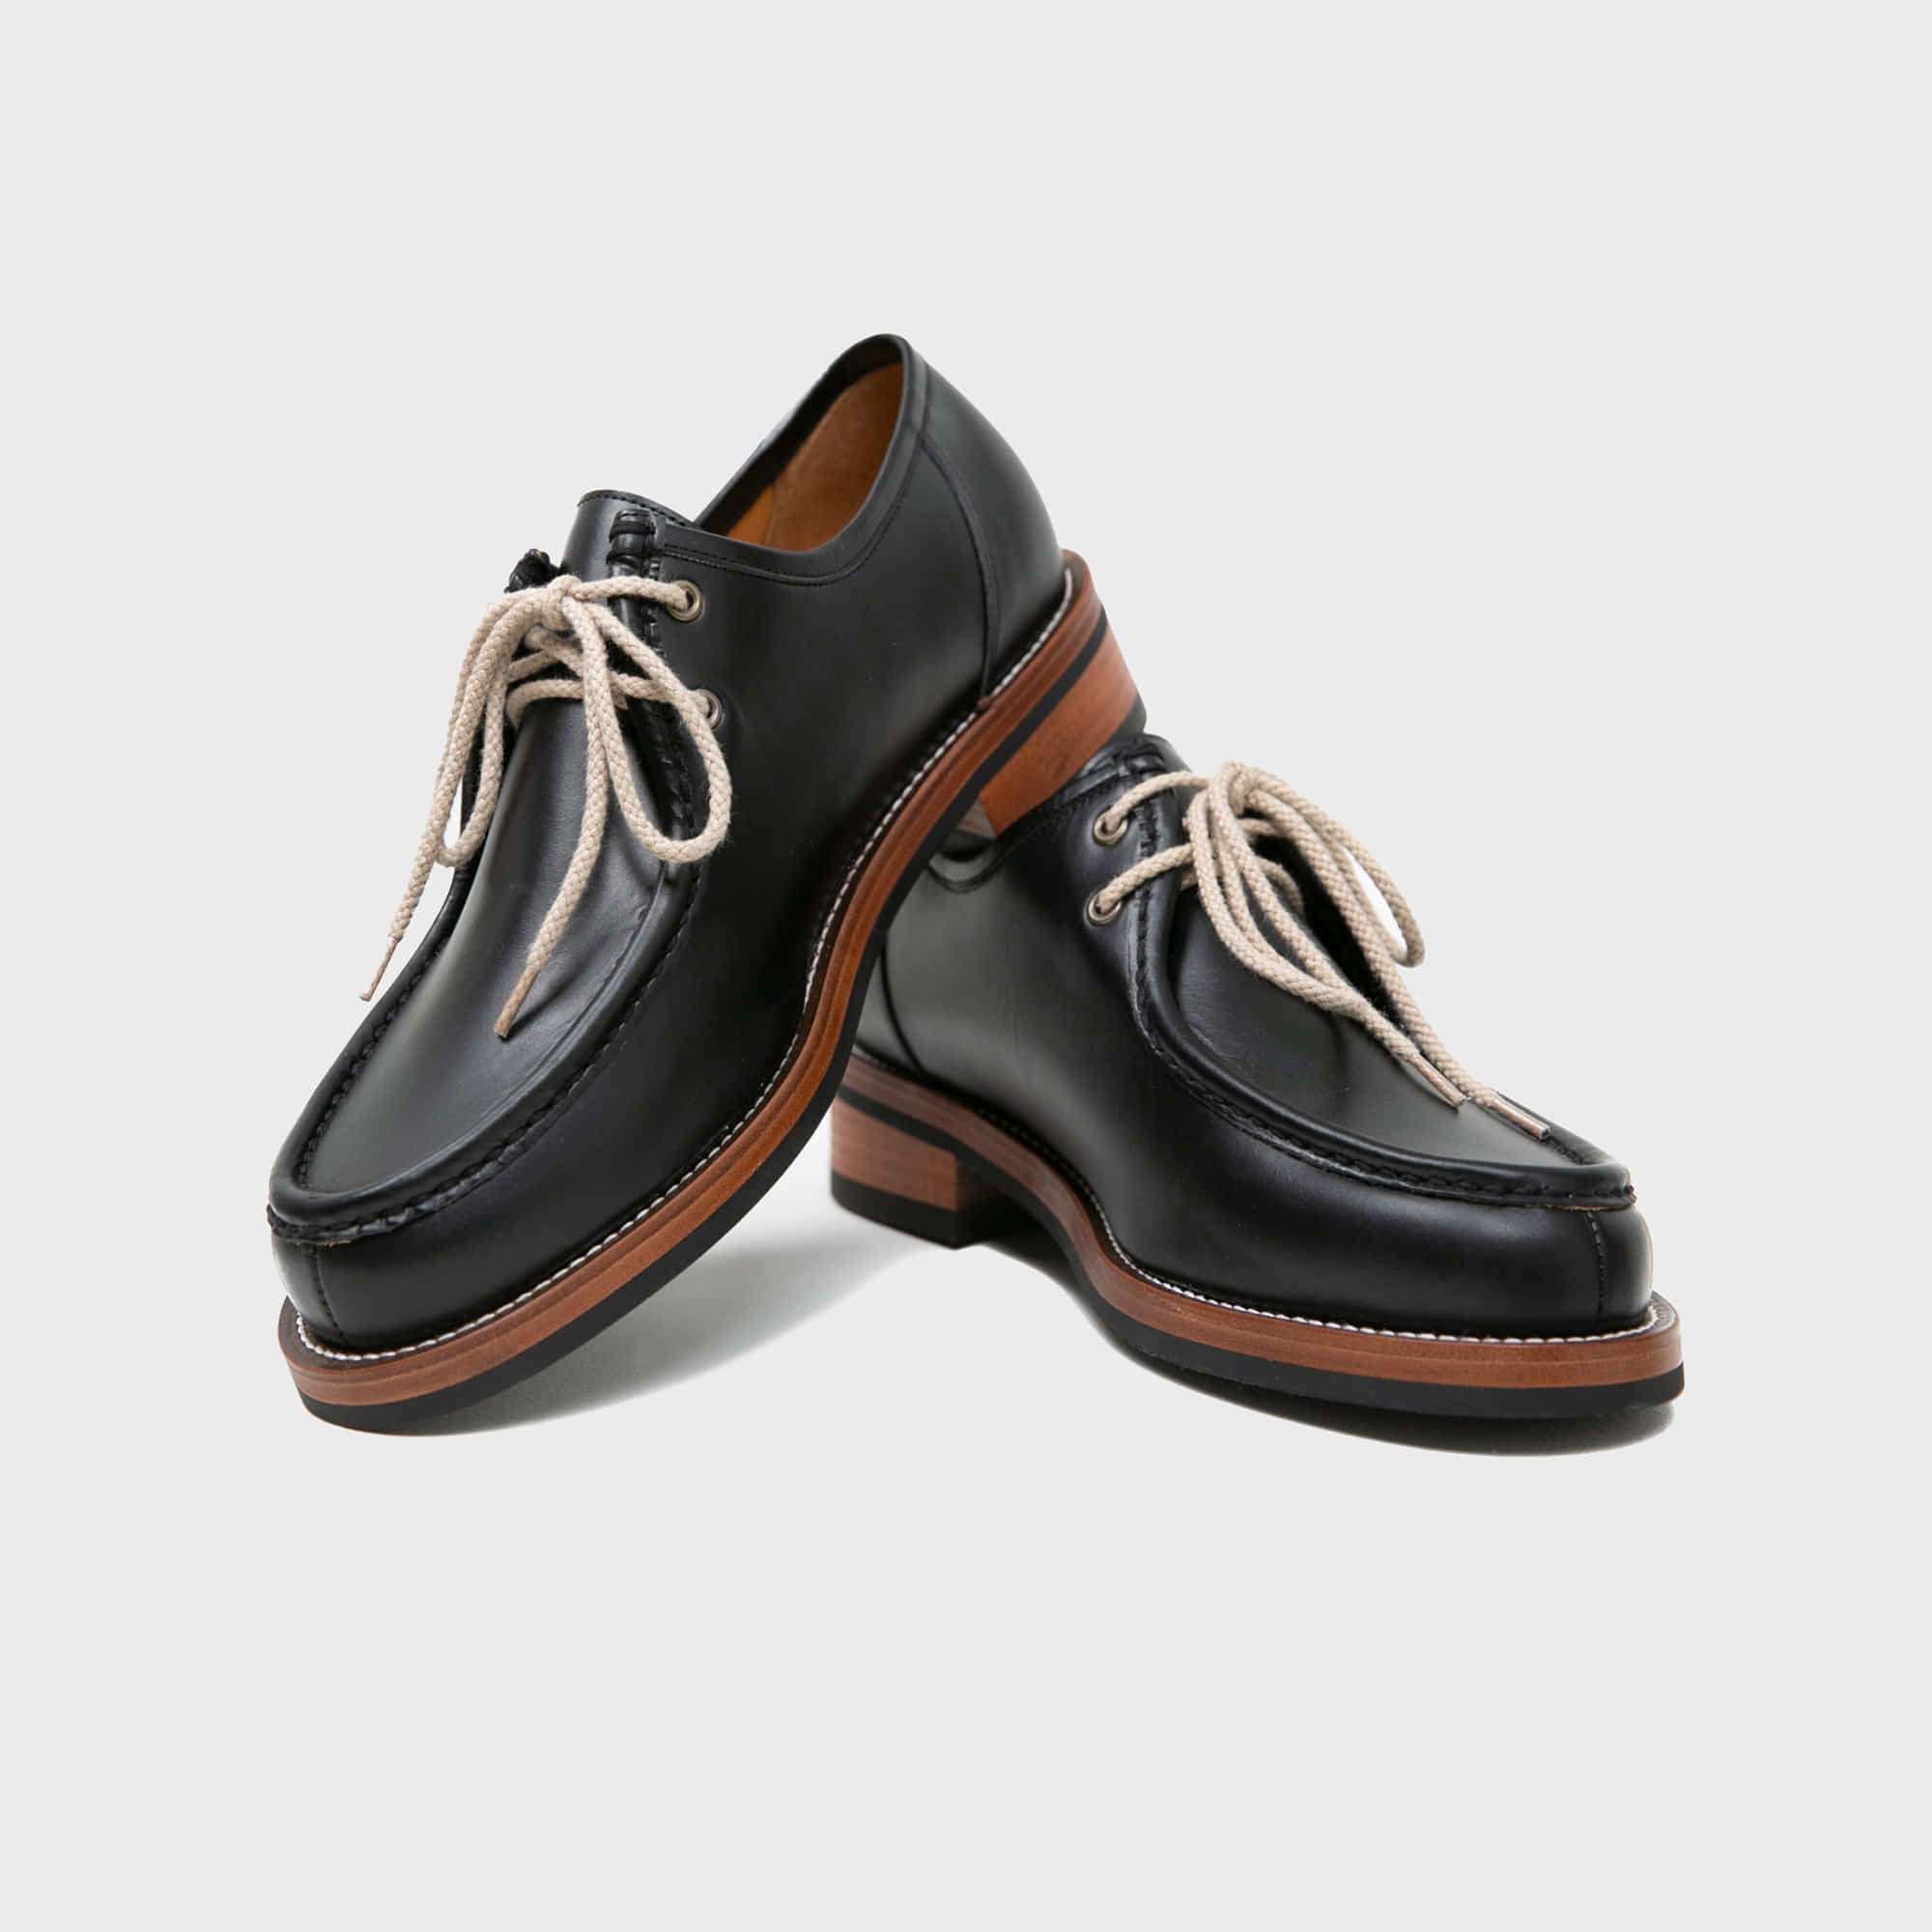 [BILLYS&CO X ANGLAN] Tyrolean Derby Shoes - Black